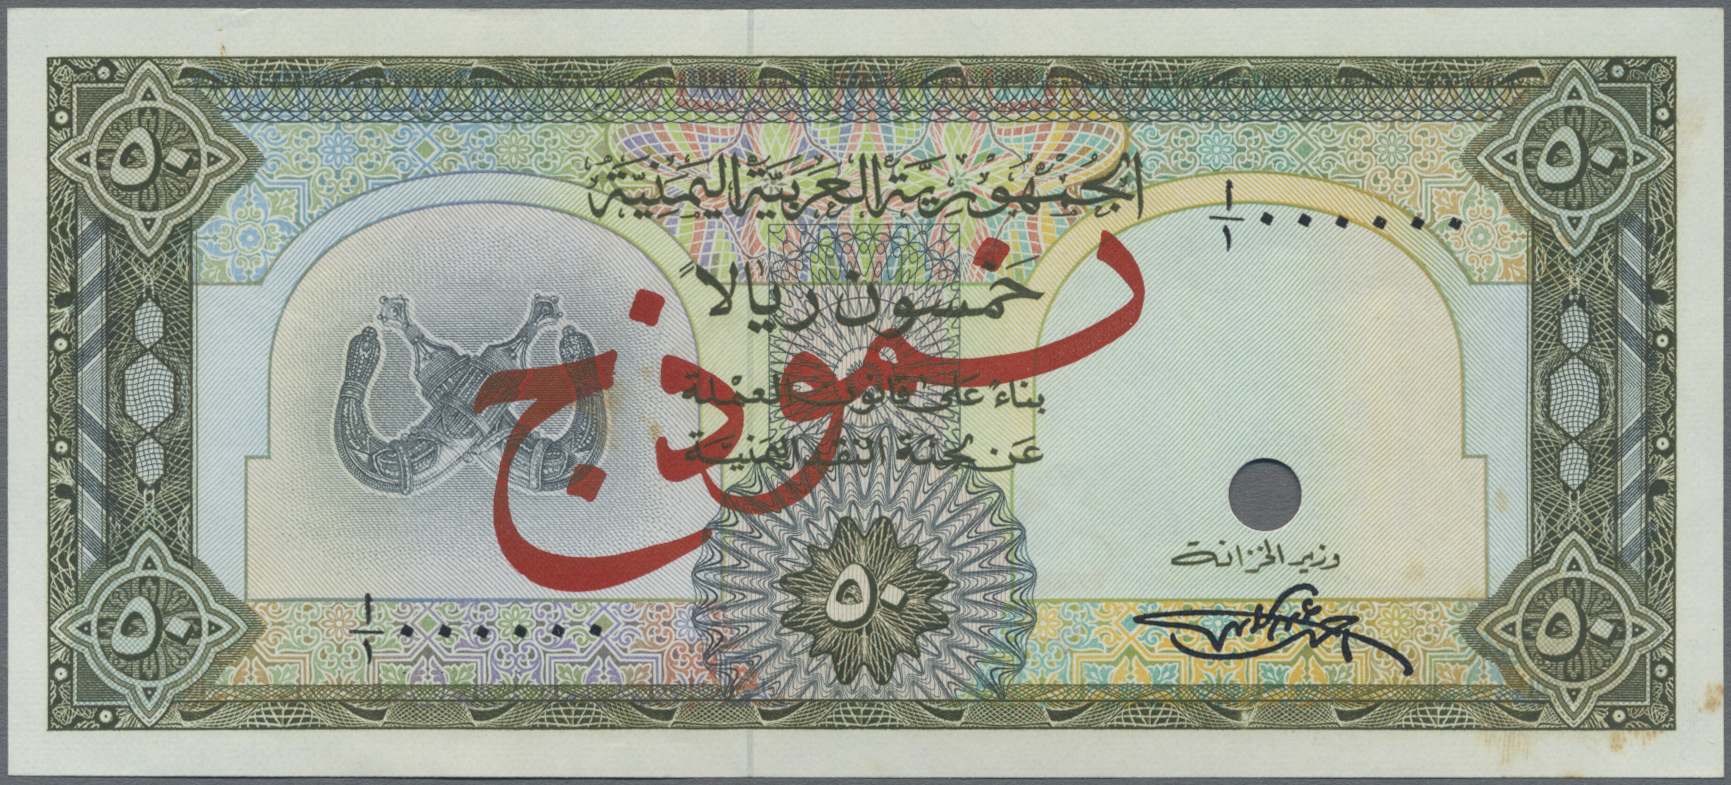 Lot 00926 - Yemen / Jemen | Banknoten  -  Auktionshaus Christoph Gärtner GmbH & Co. KG Sale #48 The Banknotes